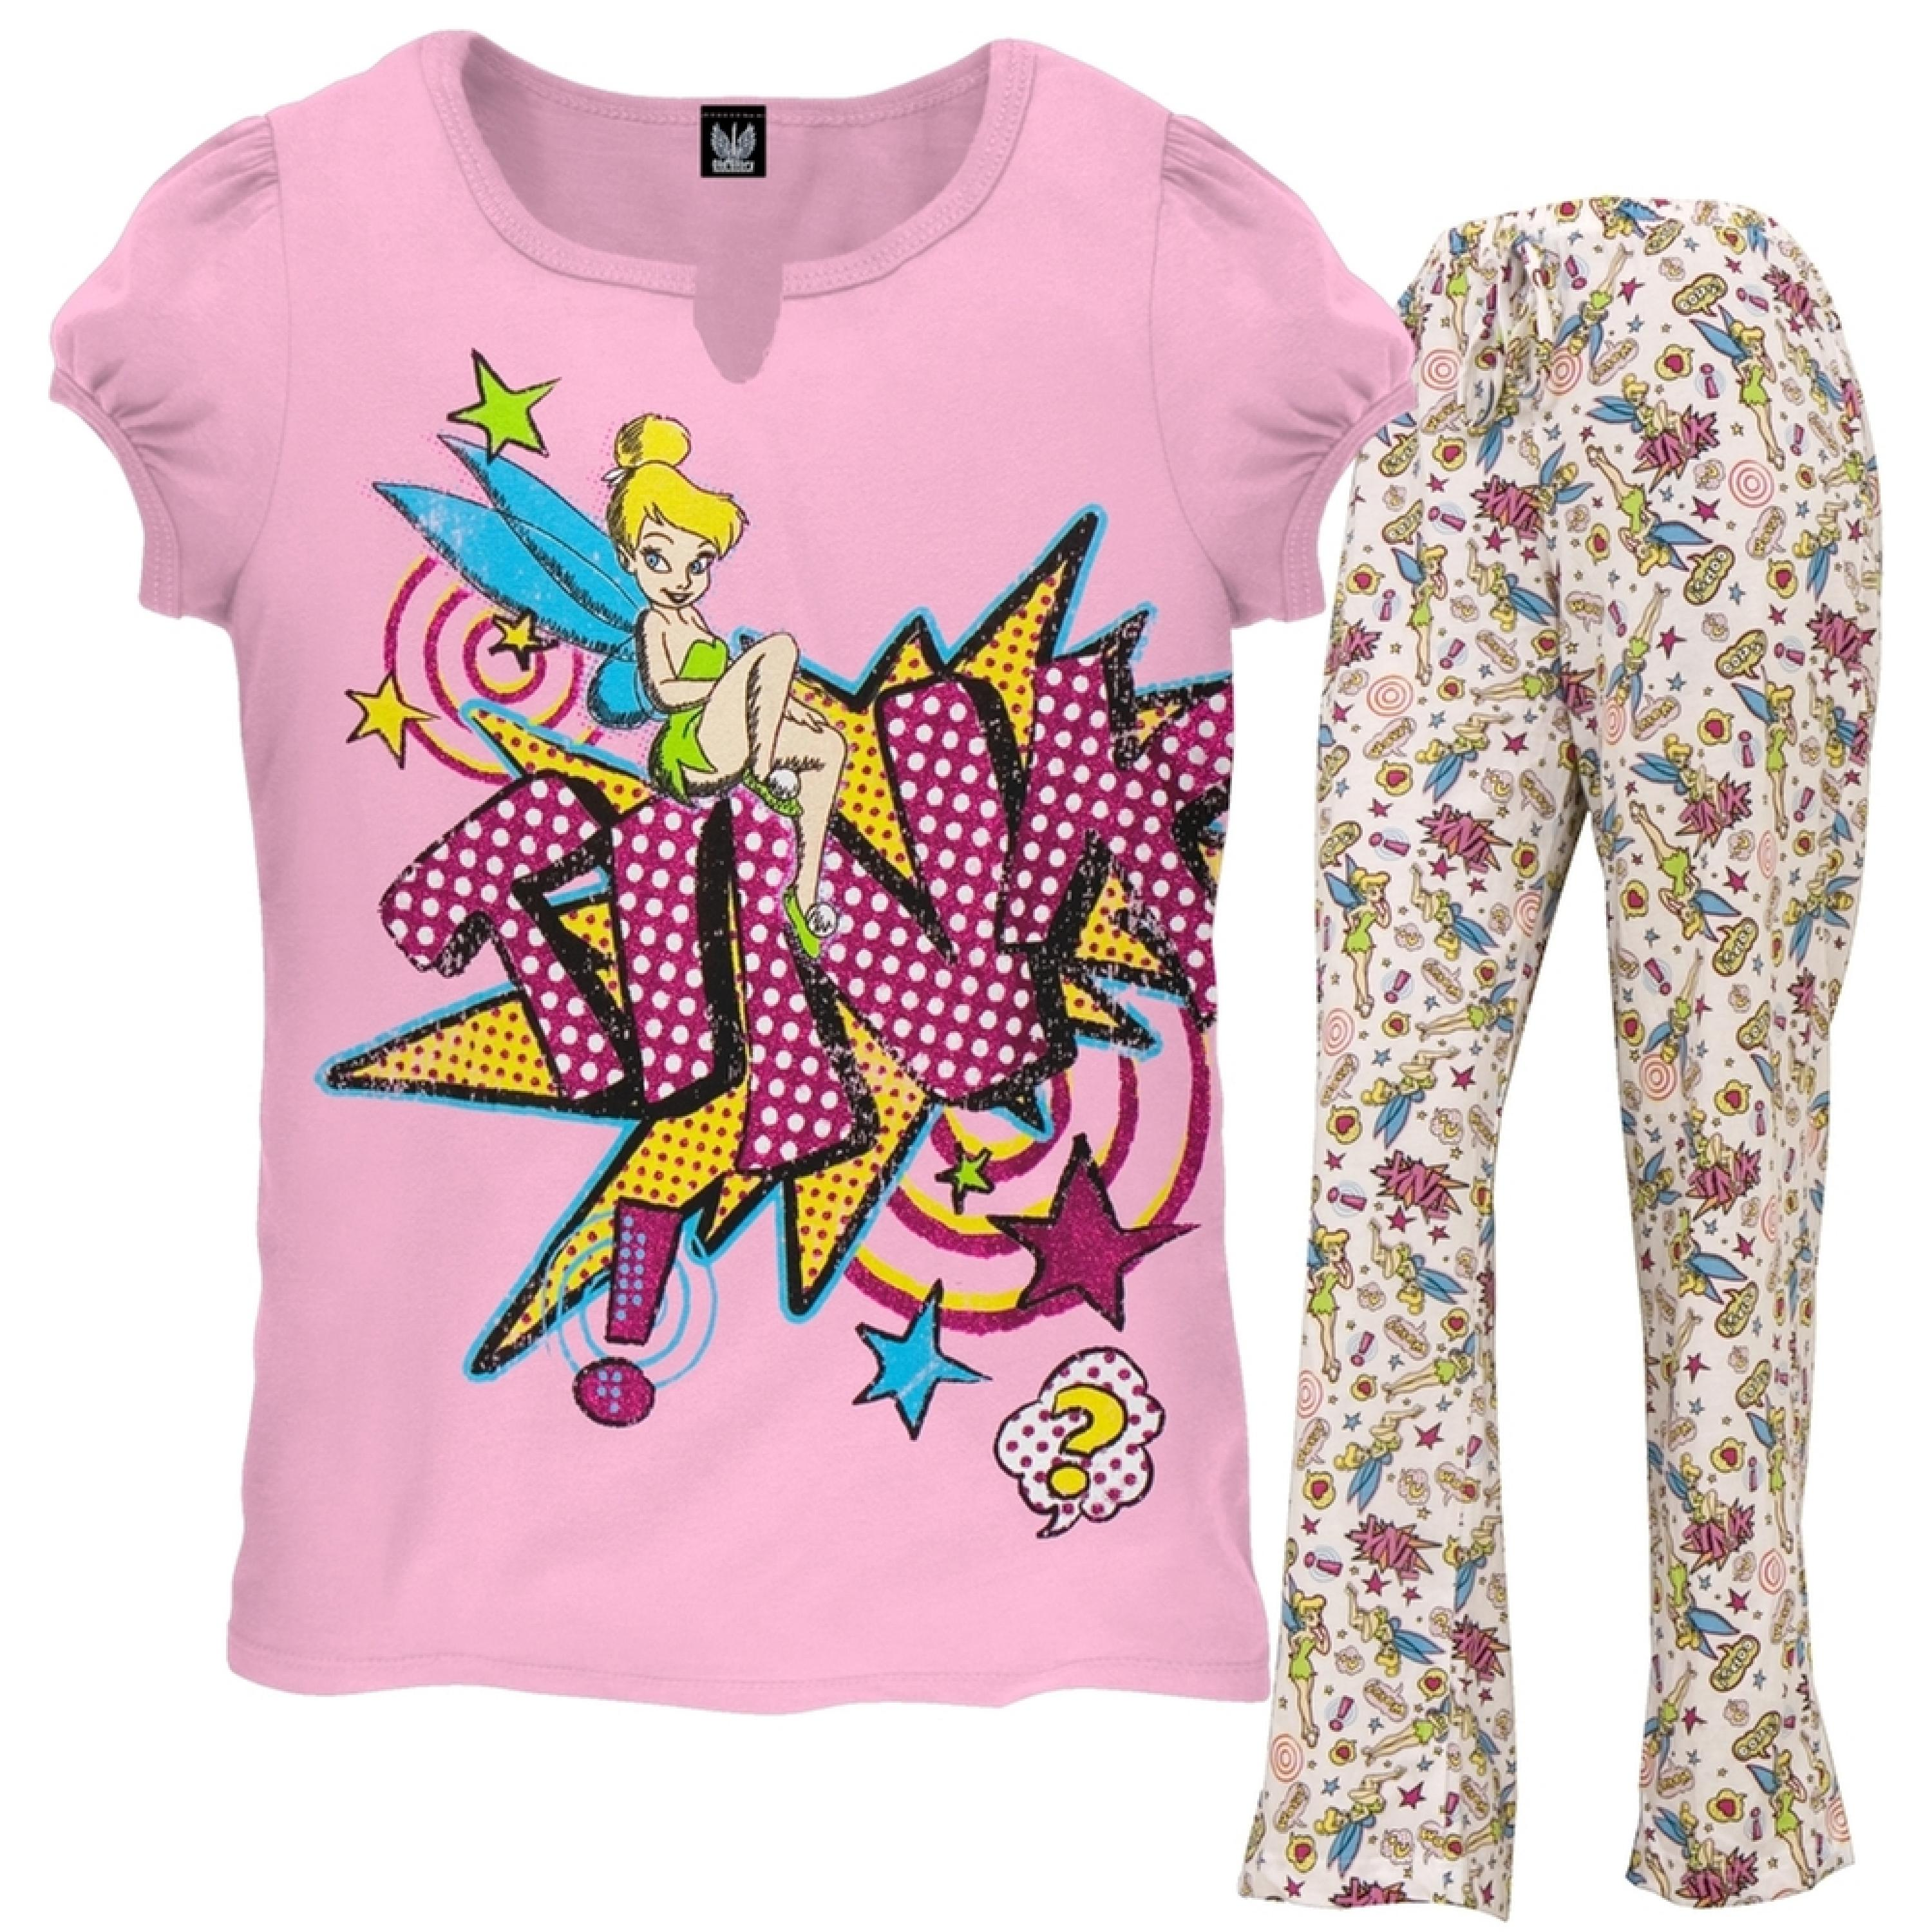 Tinkerbell - Tink Power Girls Youth Pajama Set